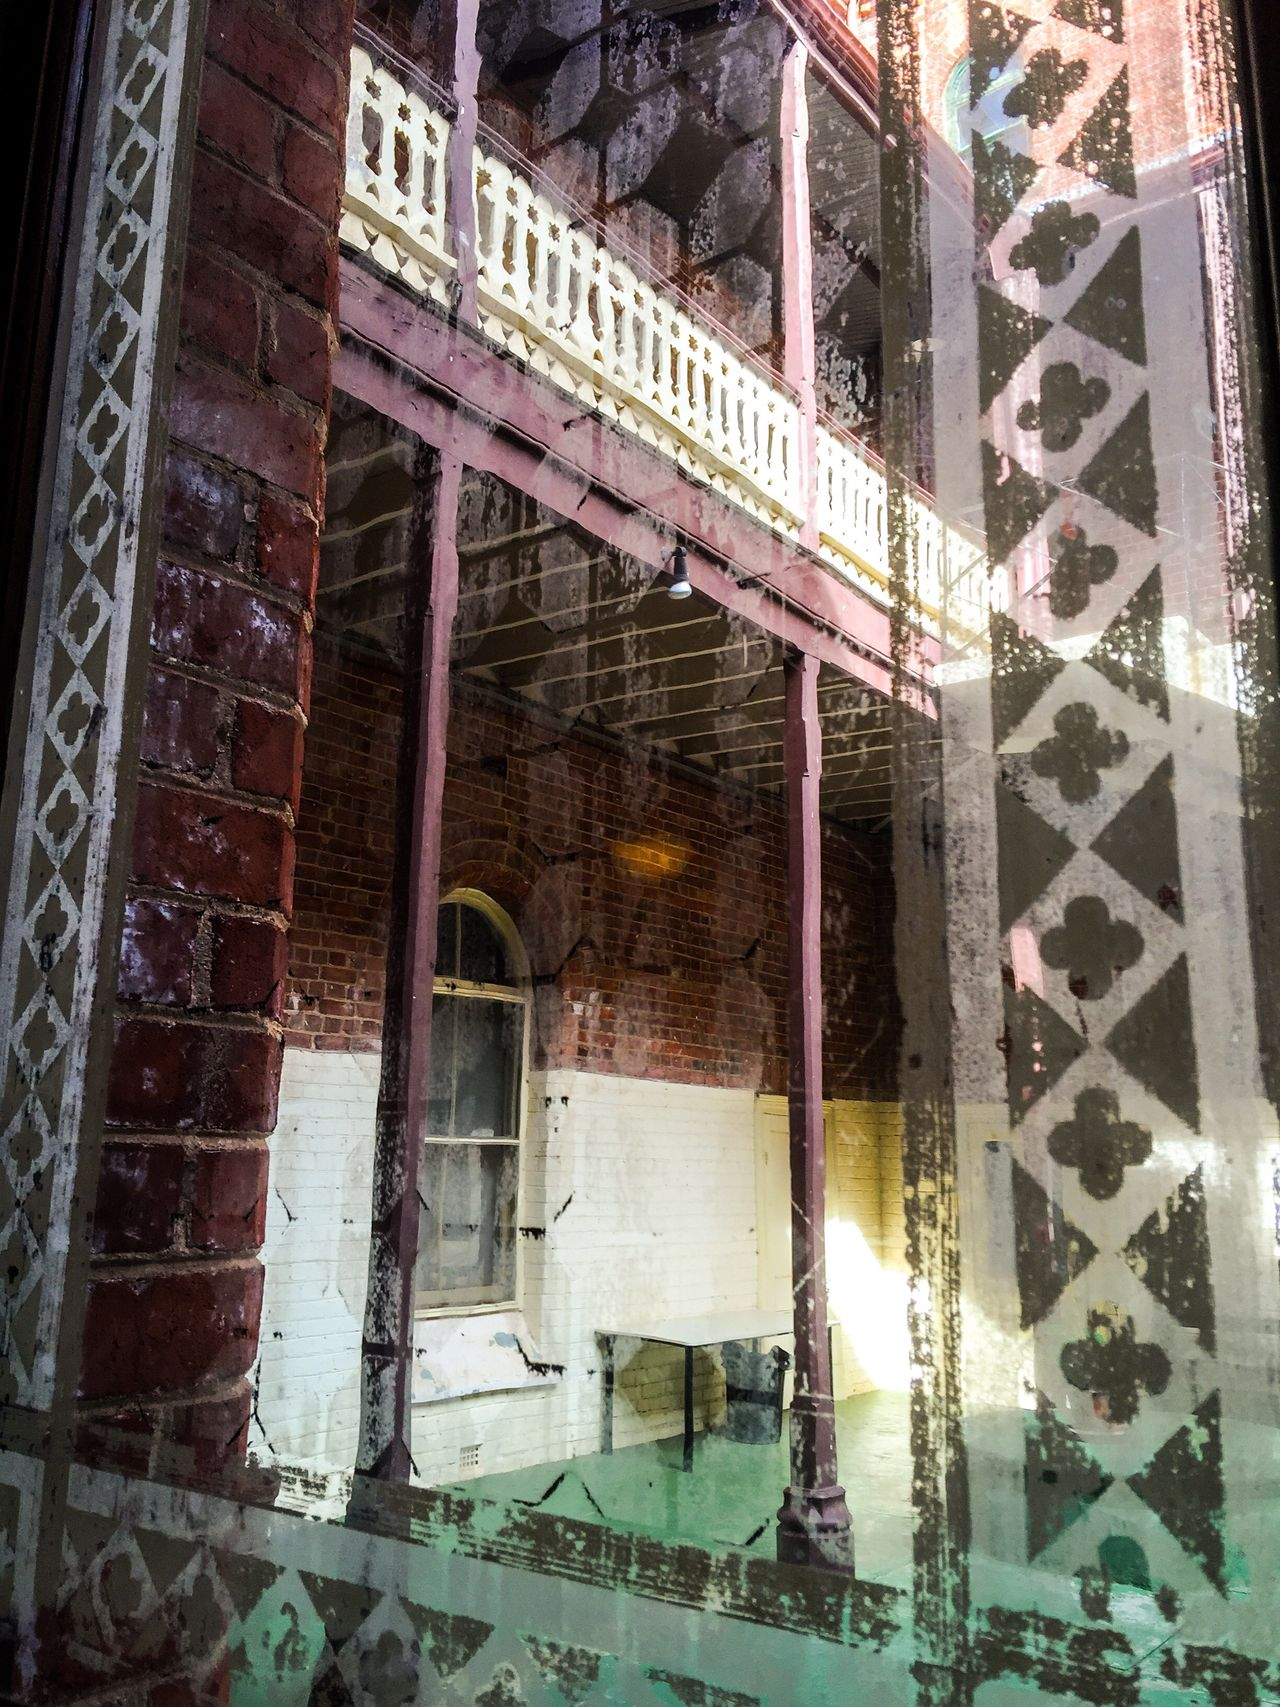 Etched Window Etched Glass Window Design Pattern View Through The Window Ornate Building Detail Architecture Courtyard  View Through Interior Design Craftsmanship  Old Old Buildings Old-fashioned Style Unique Etched Glass Faint Worn Balcony View Brick Brick Wall